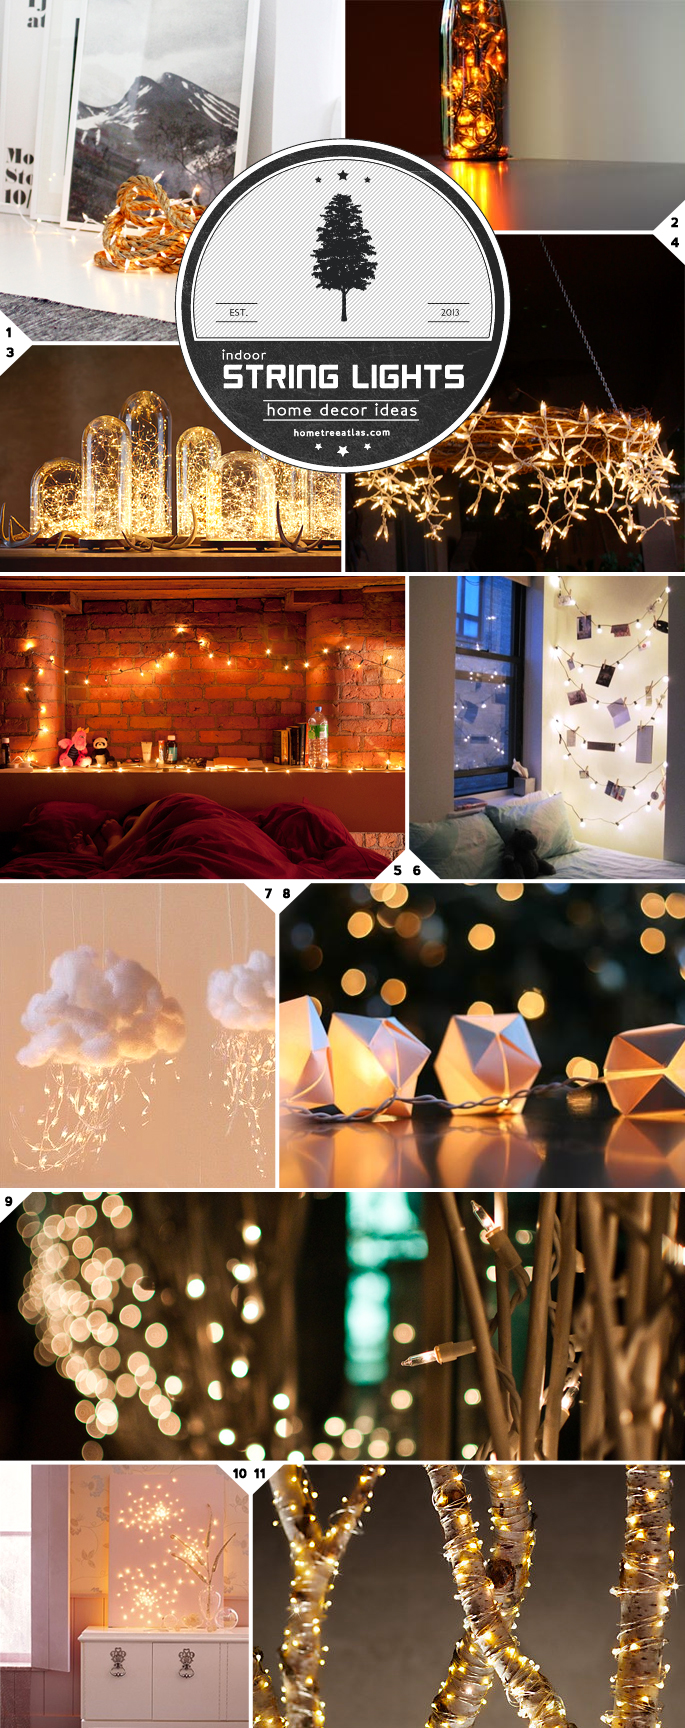 Home decor ideas beautiful ways to use string lights for Home decor ideas string lights